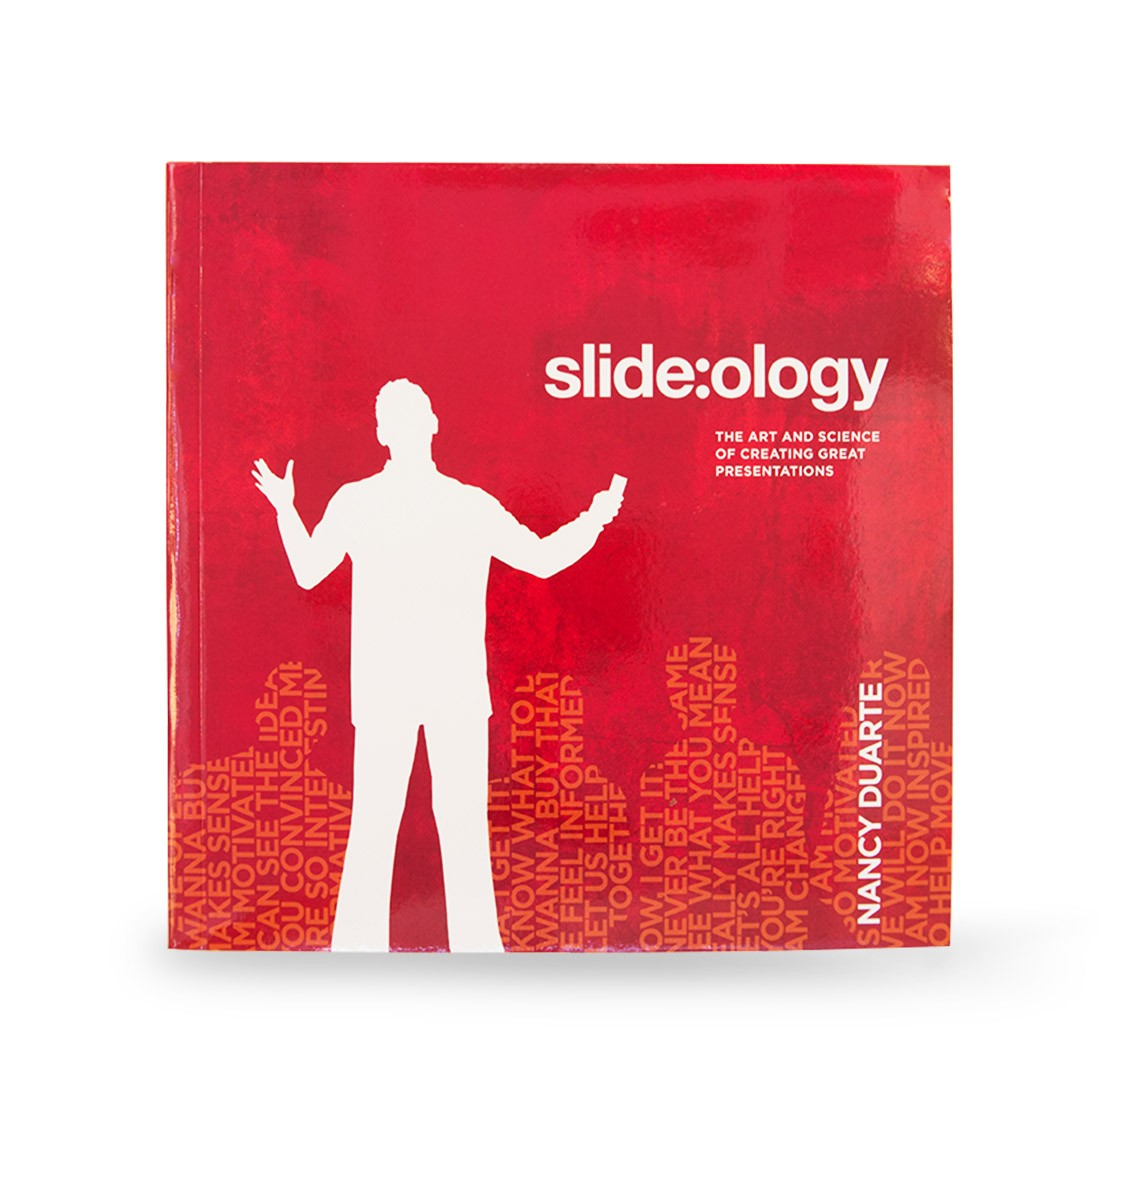 slideology book